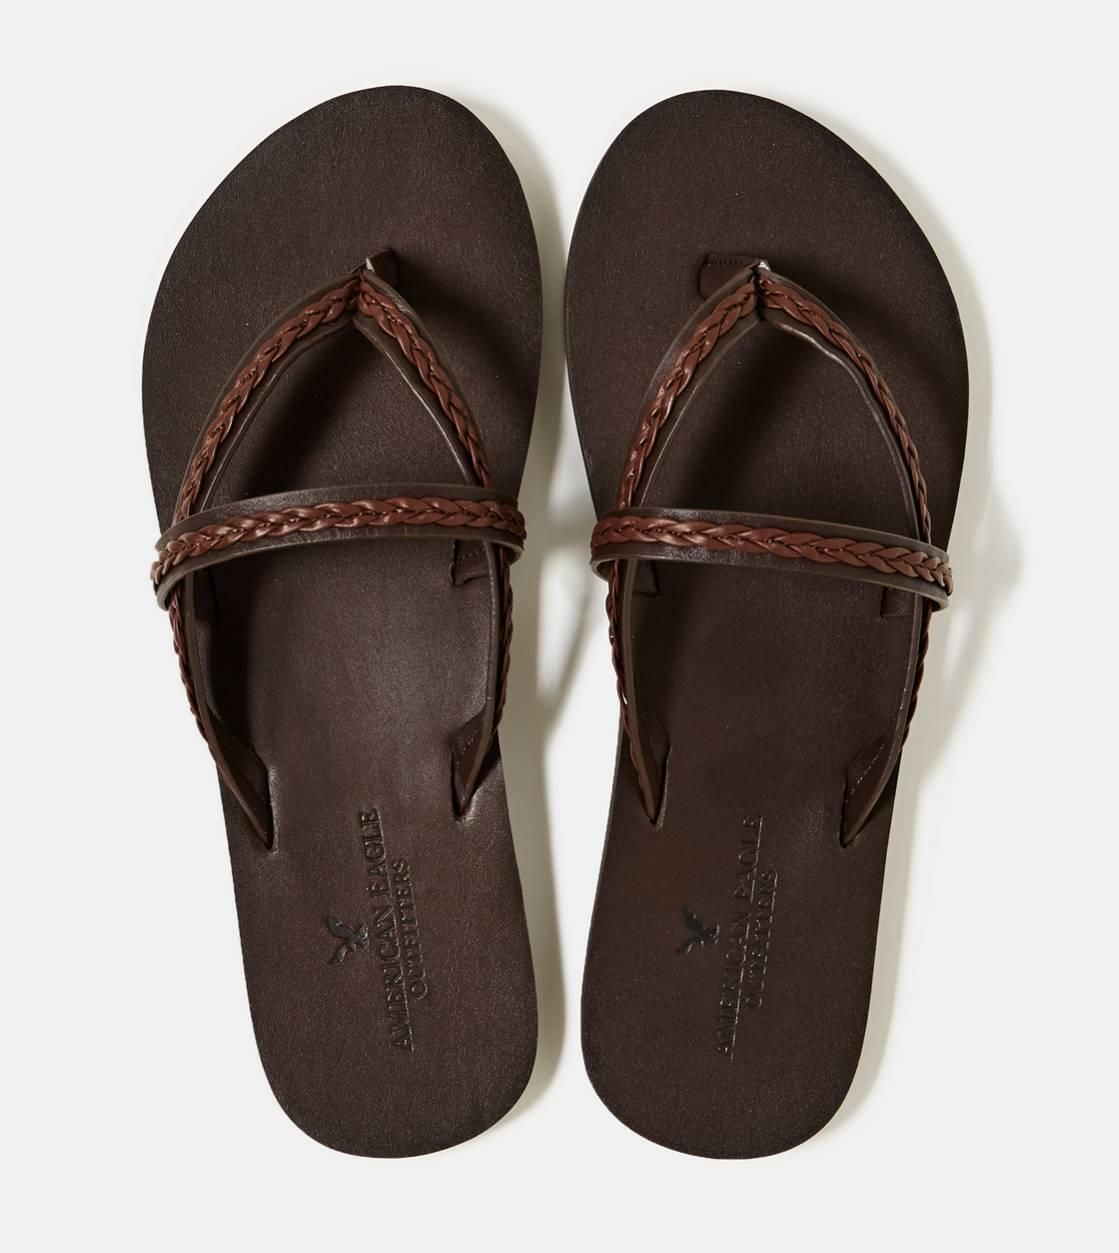 Aecom  Great Summer Sandal  In My Suitcase  Shoes -8250